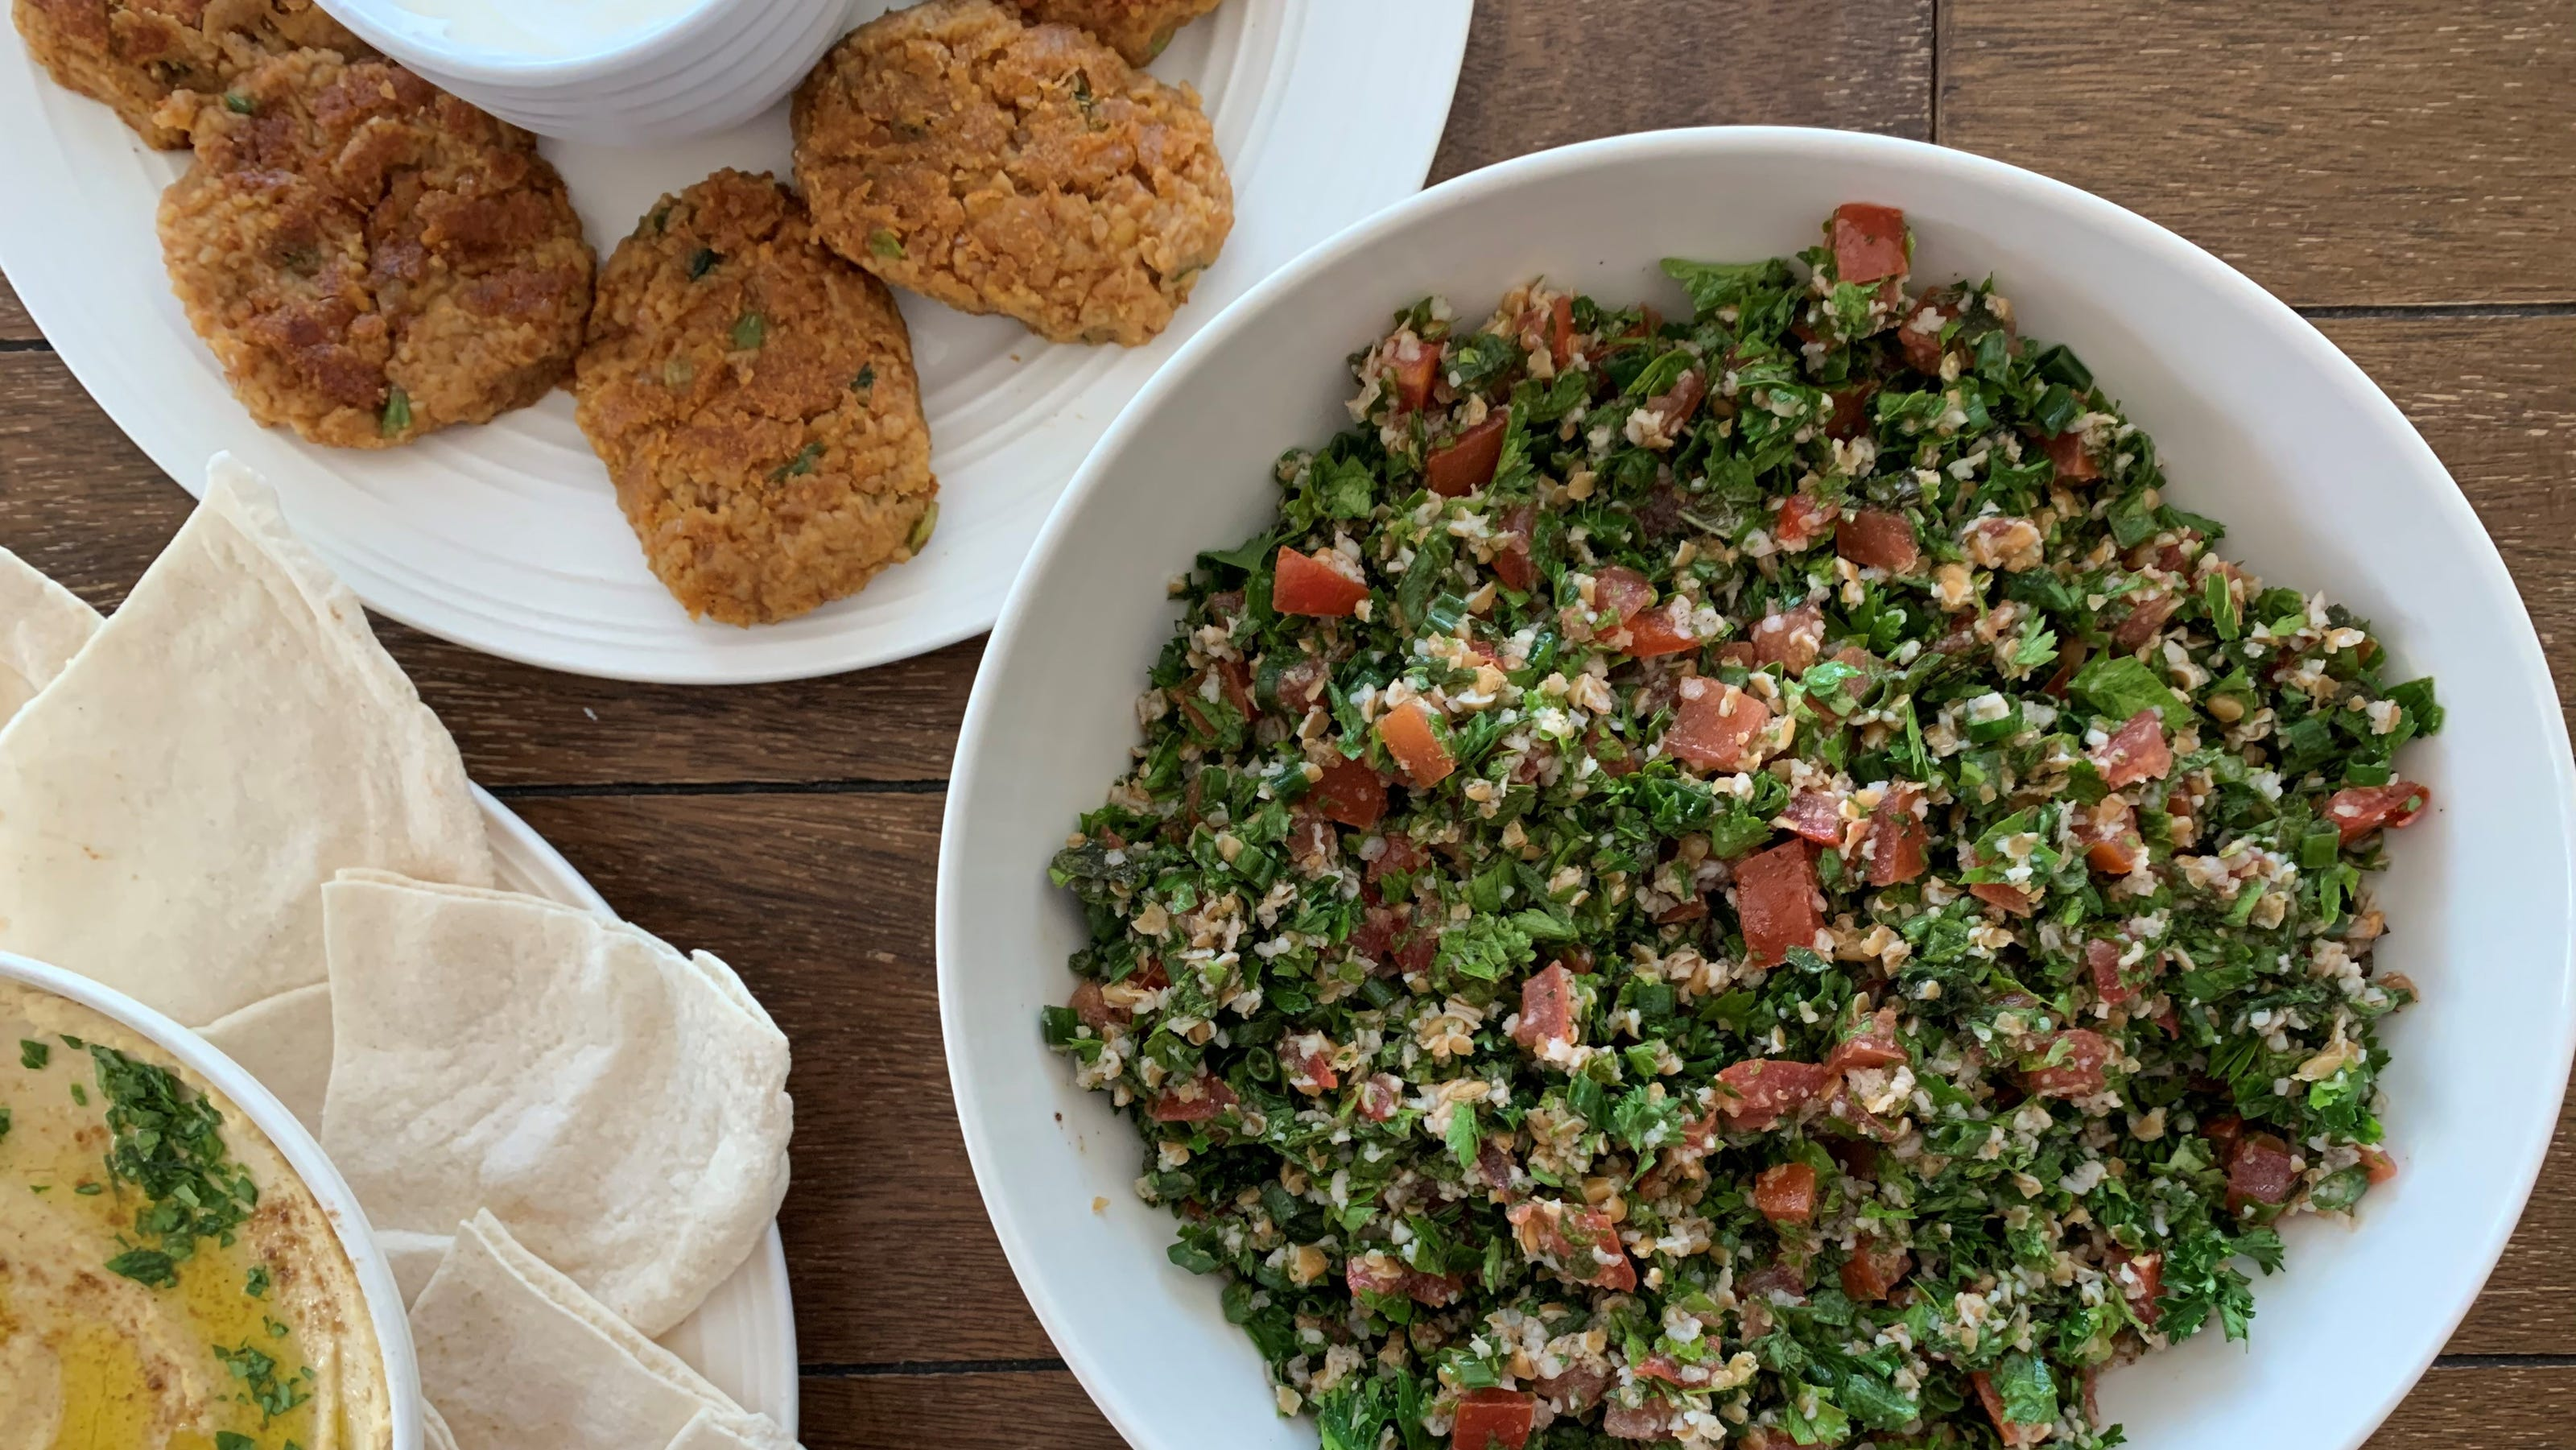 Her Grandma S Tabbouleh Recipe Takes Patience Here S Why It S Worth It